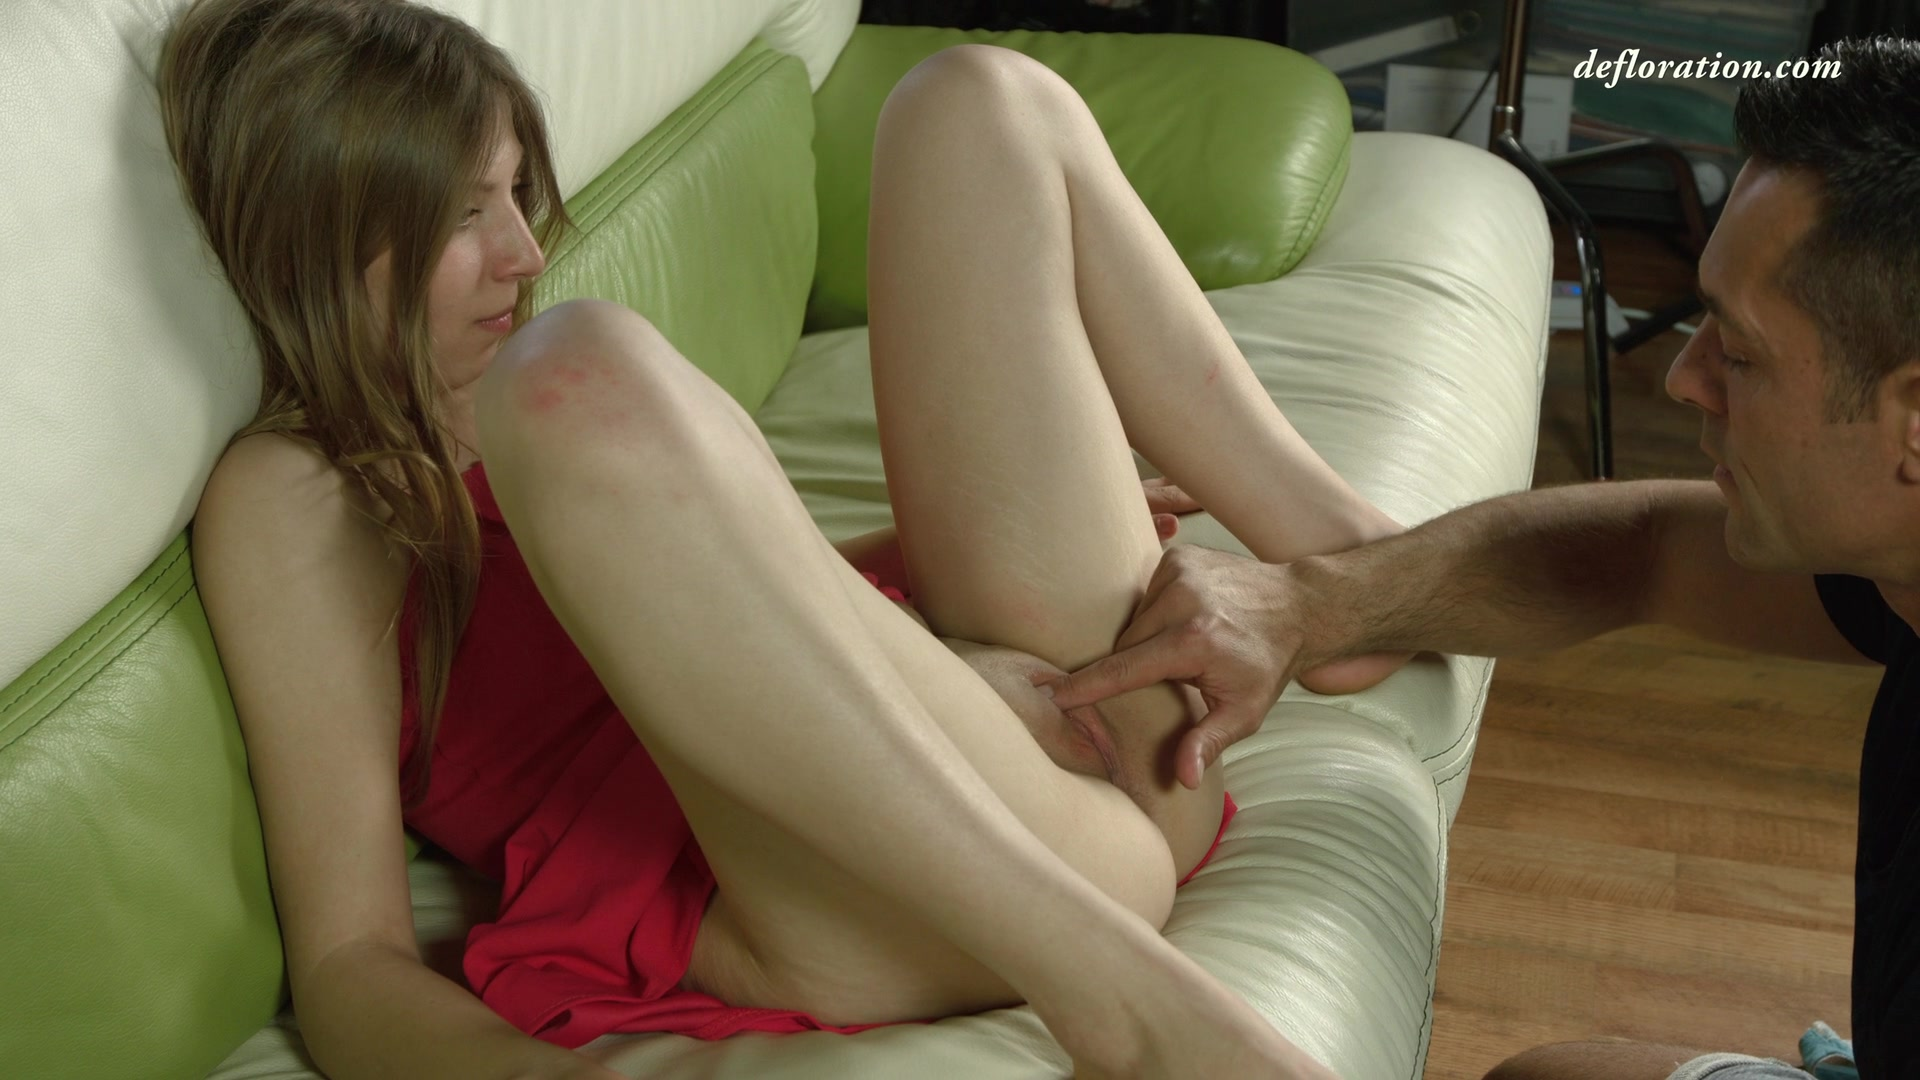 Russian Teen Defloration 23